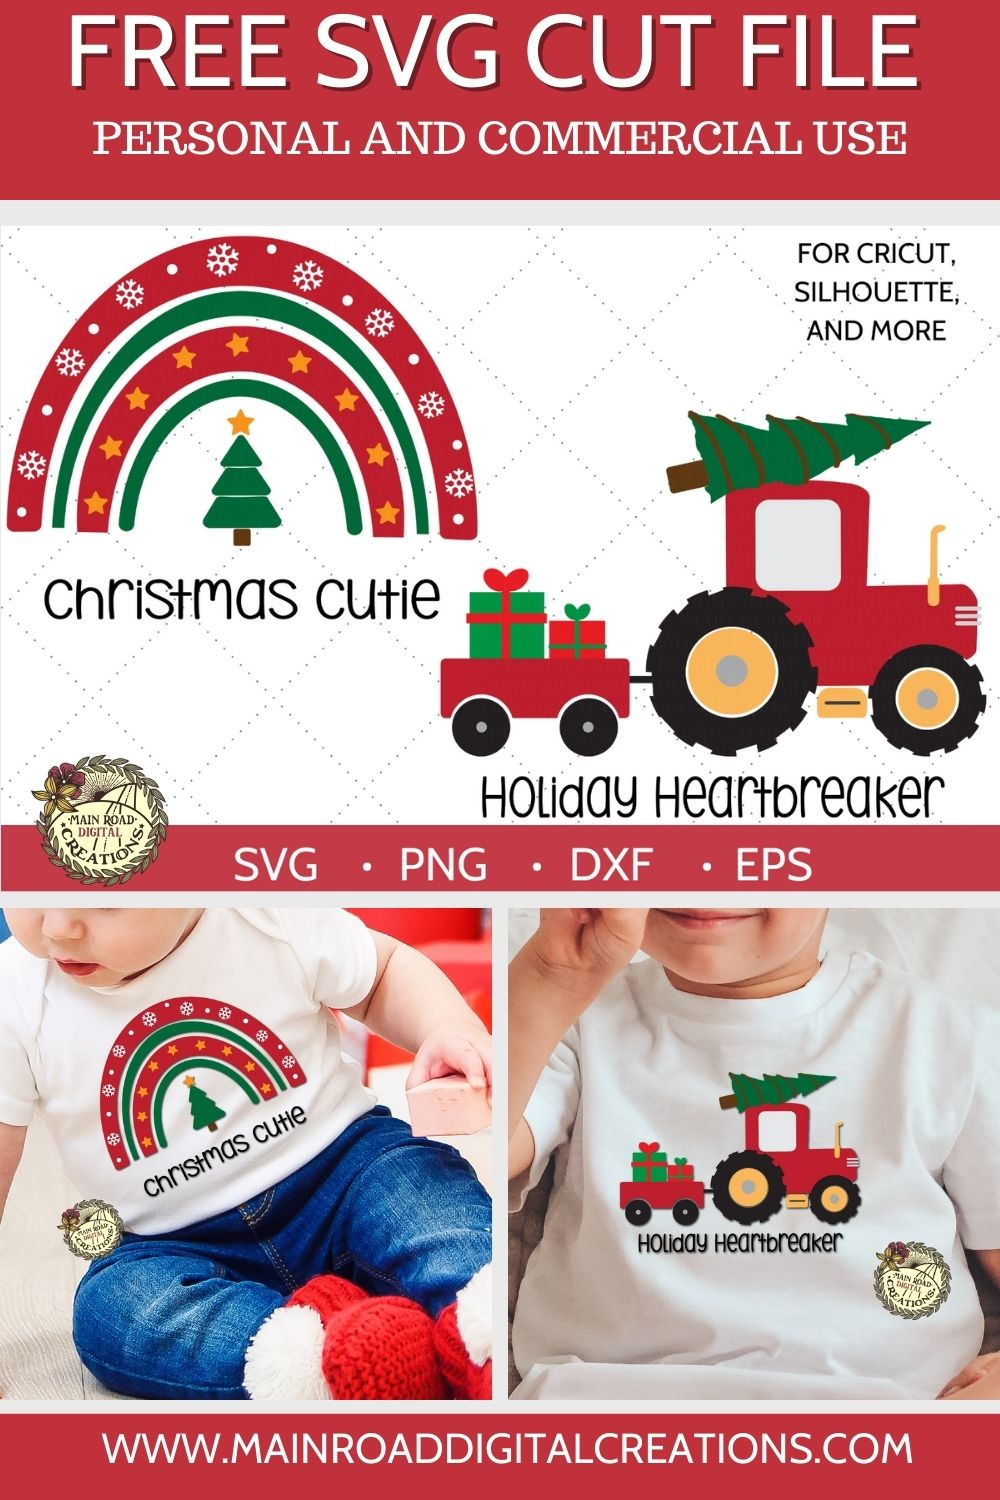 Free Christmas cut files, Christmas cutie free svg, Holiday Heartbreaker Christmas Tree tractor, Boy t shirt Christmas design, Girl t shirt Christmas design, Christmas Cute SVG, Christmas tractor with presents cut file, Christmas SVG Files free